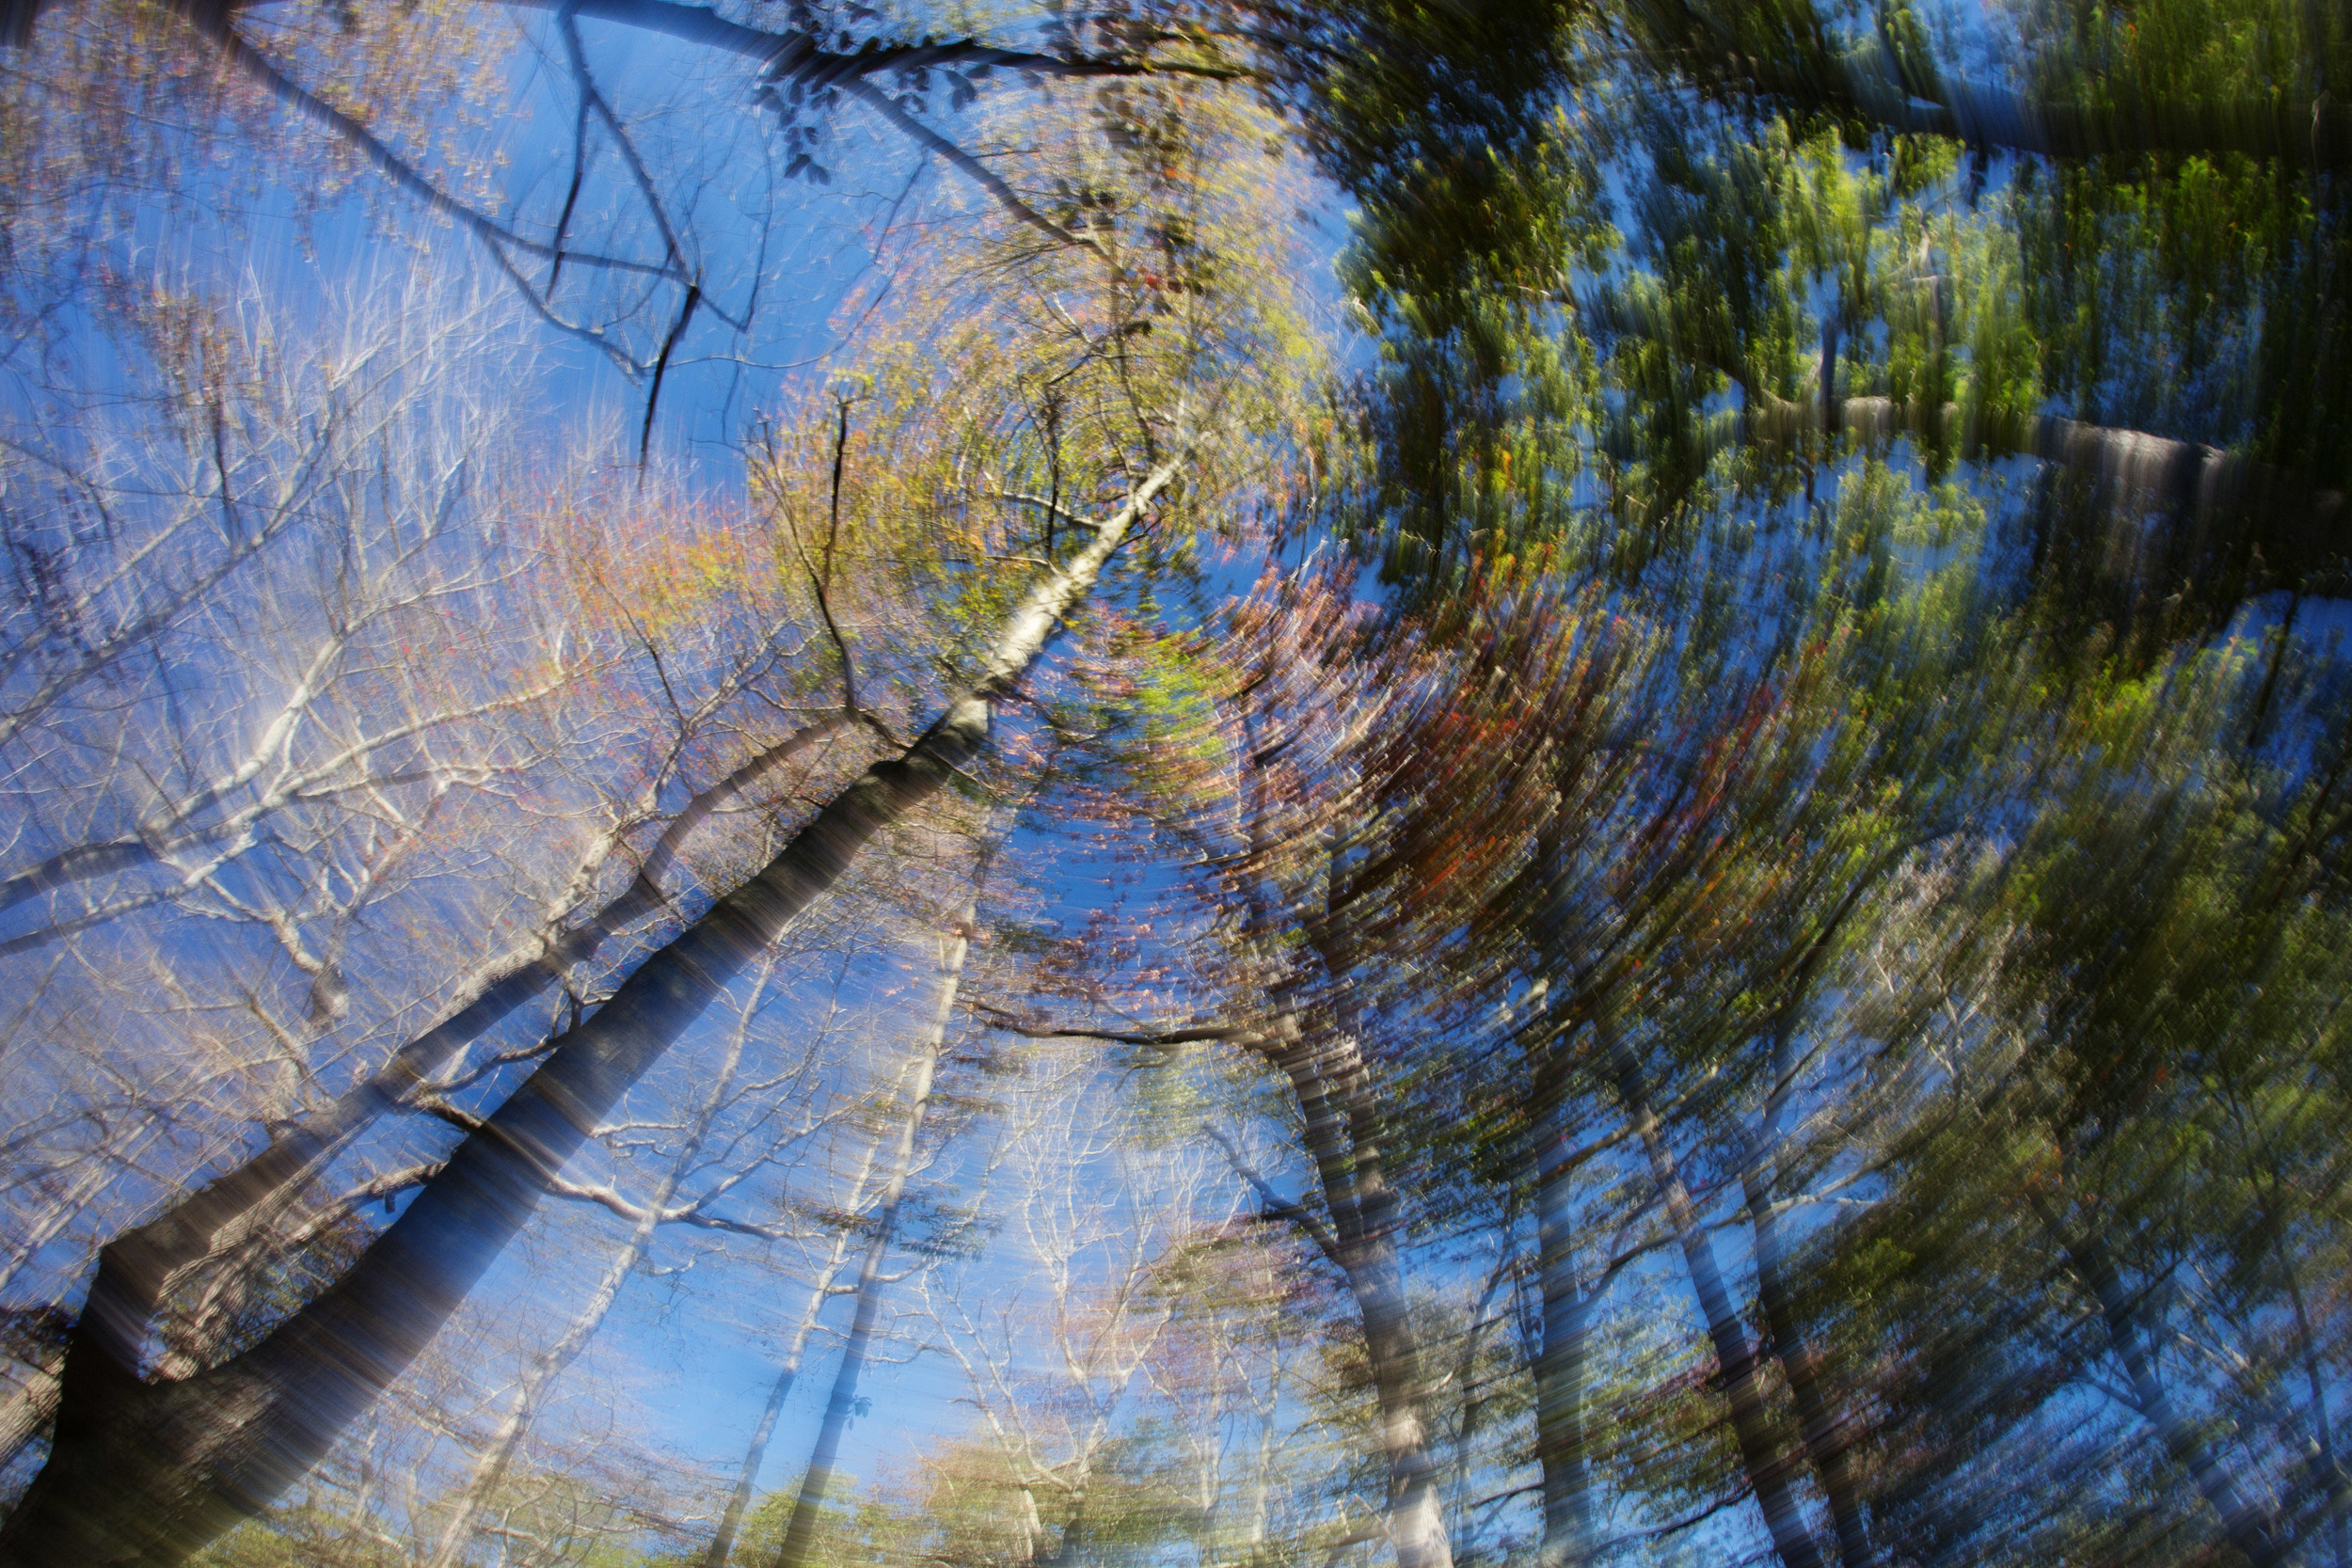 Spinning under the autumn leaves